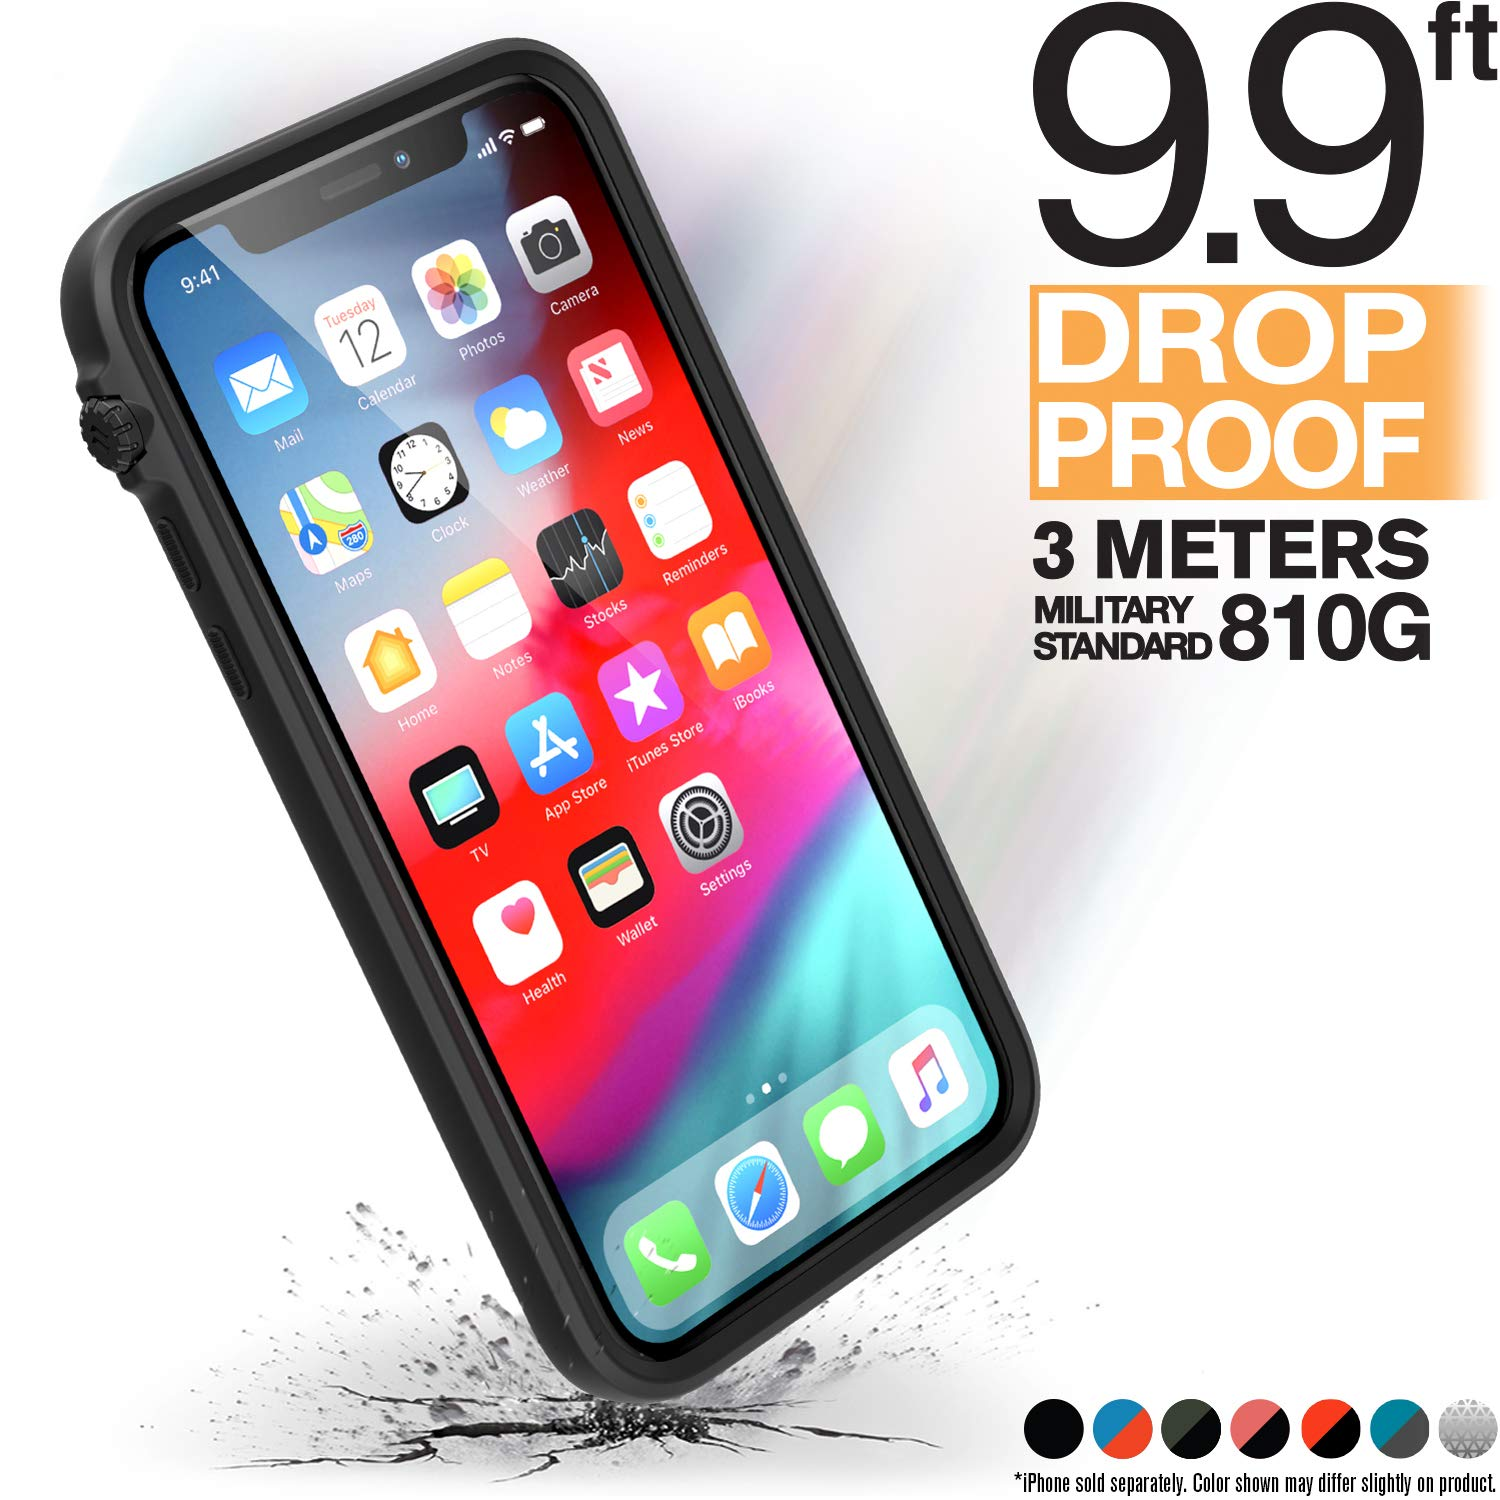 Catalyst iPhone X Case [Compatible iPhone Xs] Impact Protection, Military Grade Drop and Shock Proof Premium Material Quality, Slim Design, Stealth Black by Catalyst